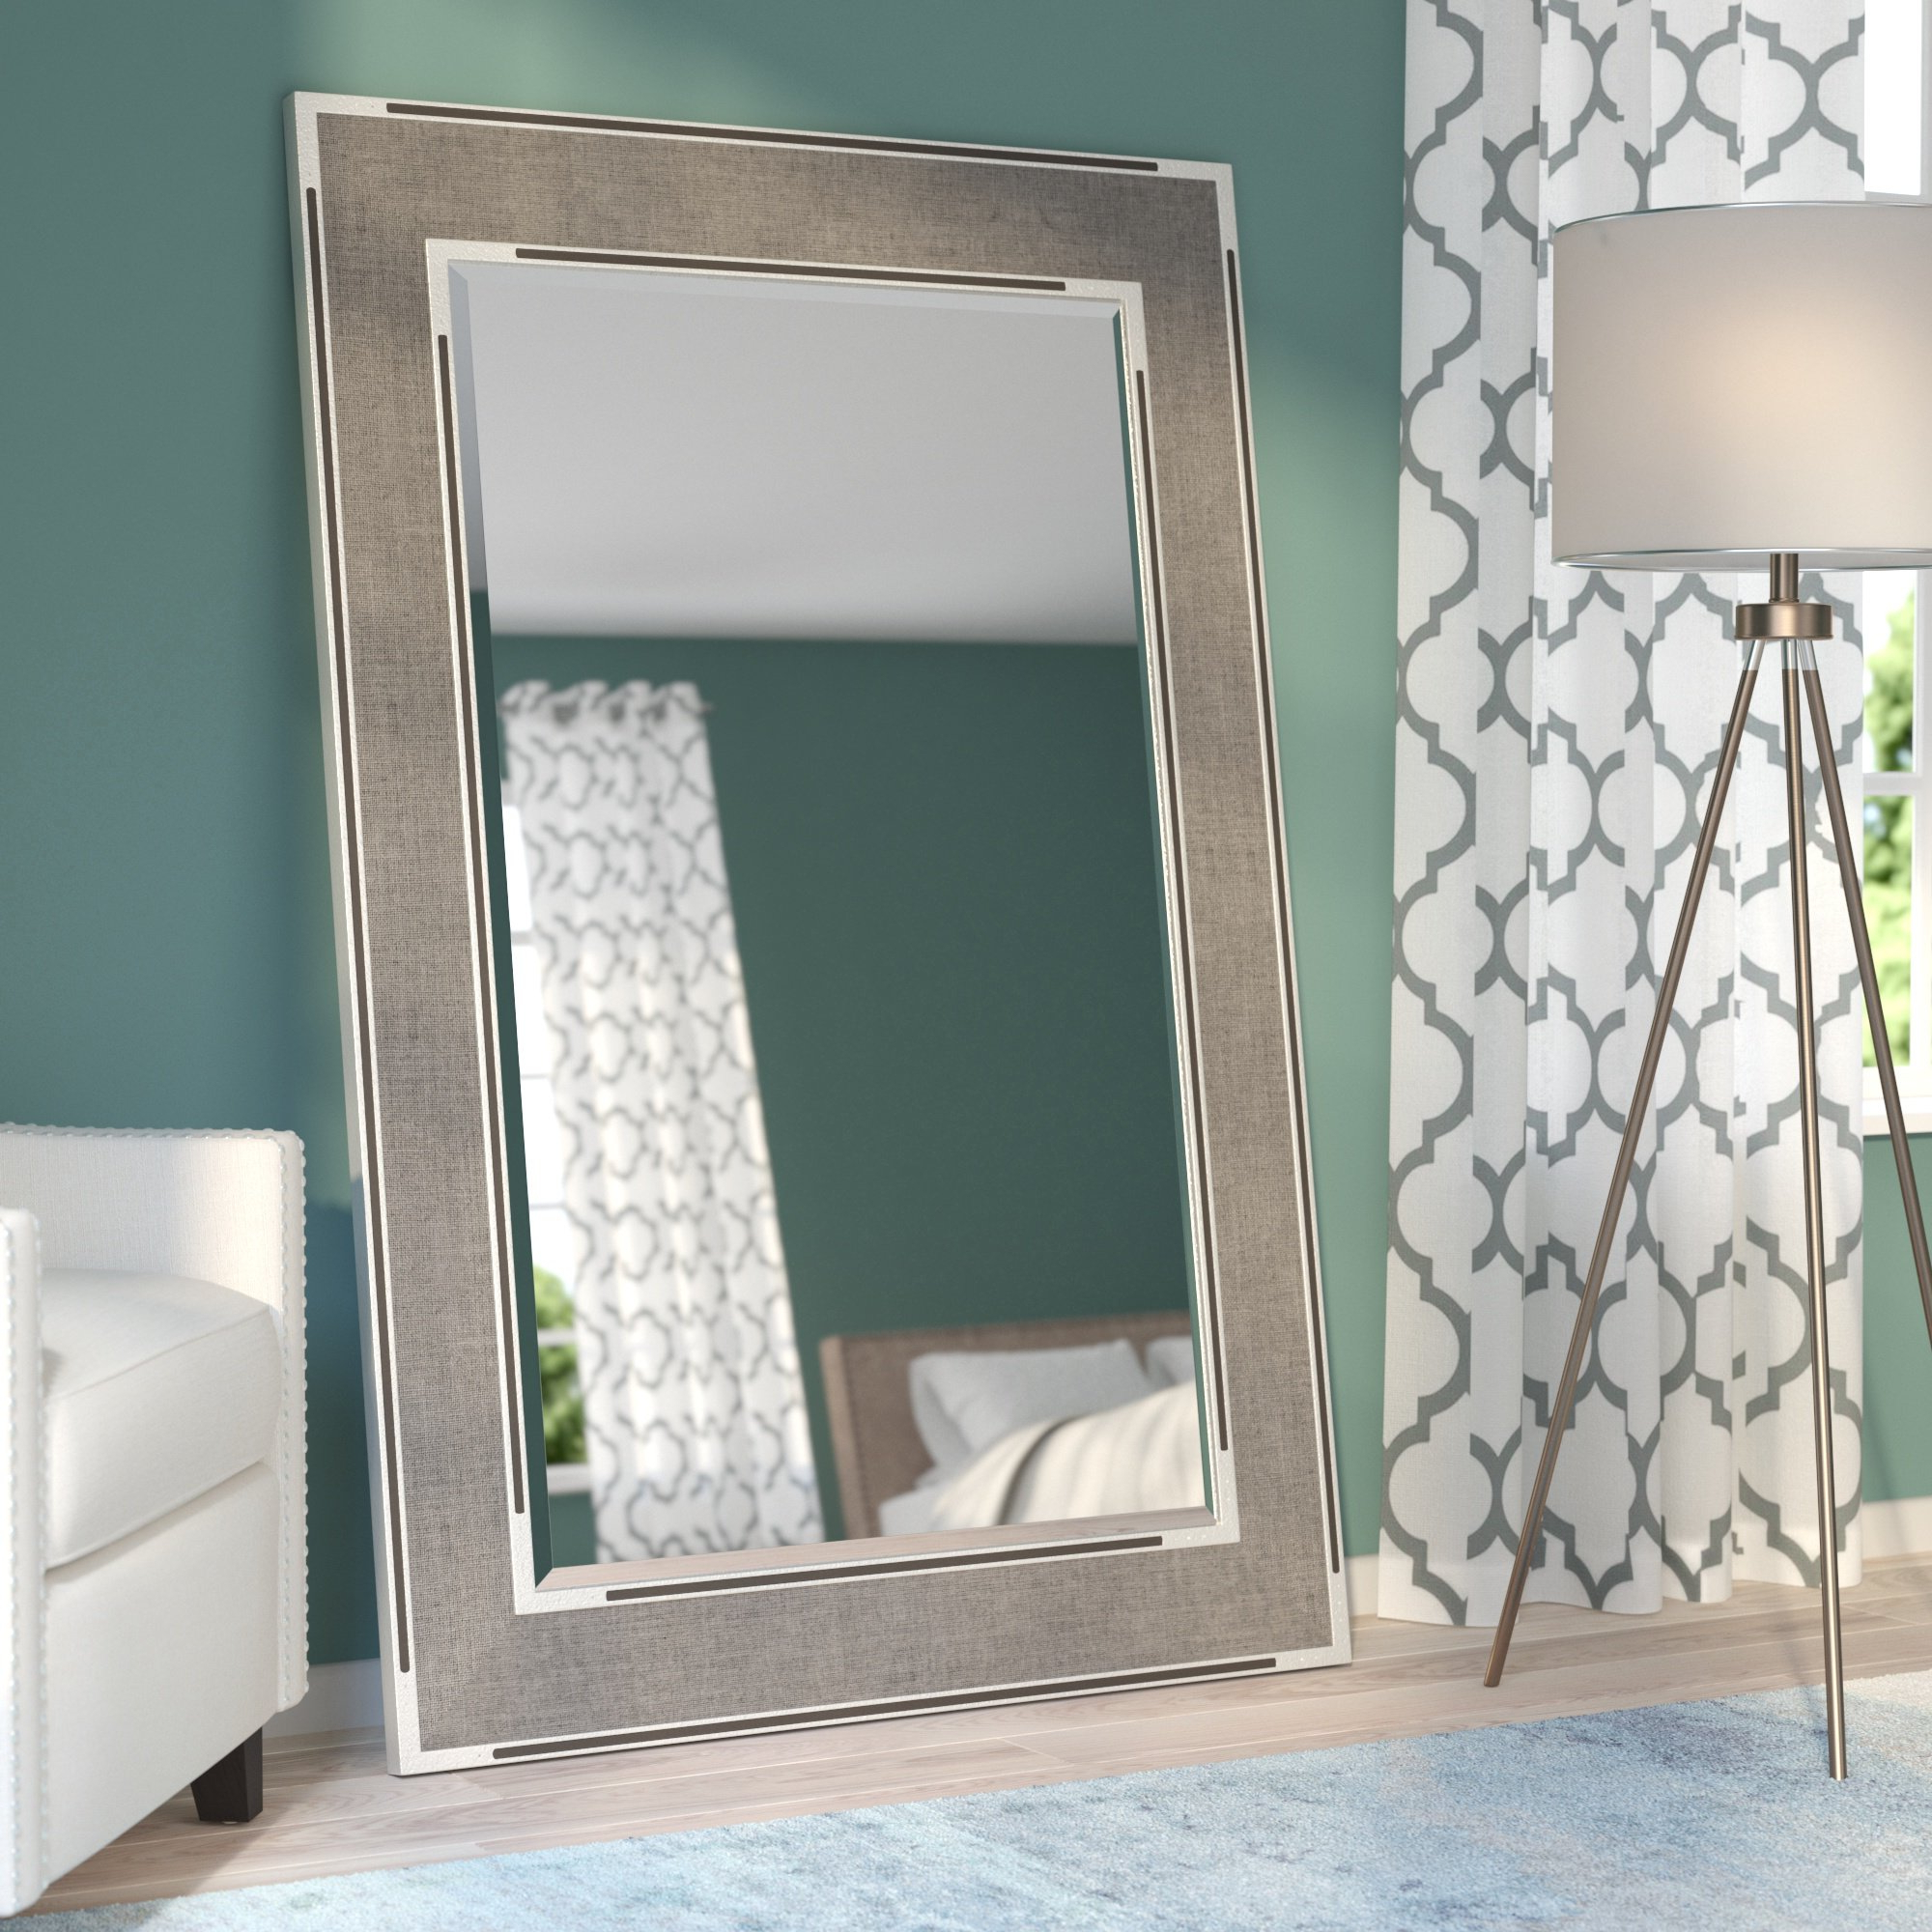 Brodbeck Oversized Wall Mirror Inside 2019 Huge Wall Mirrors (View 19 of 20)